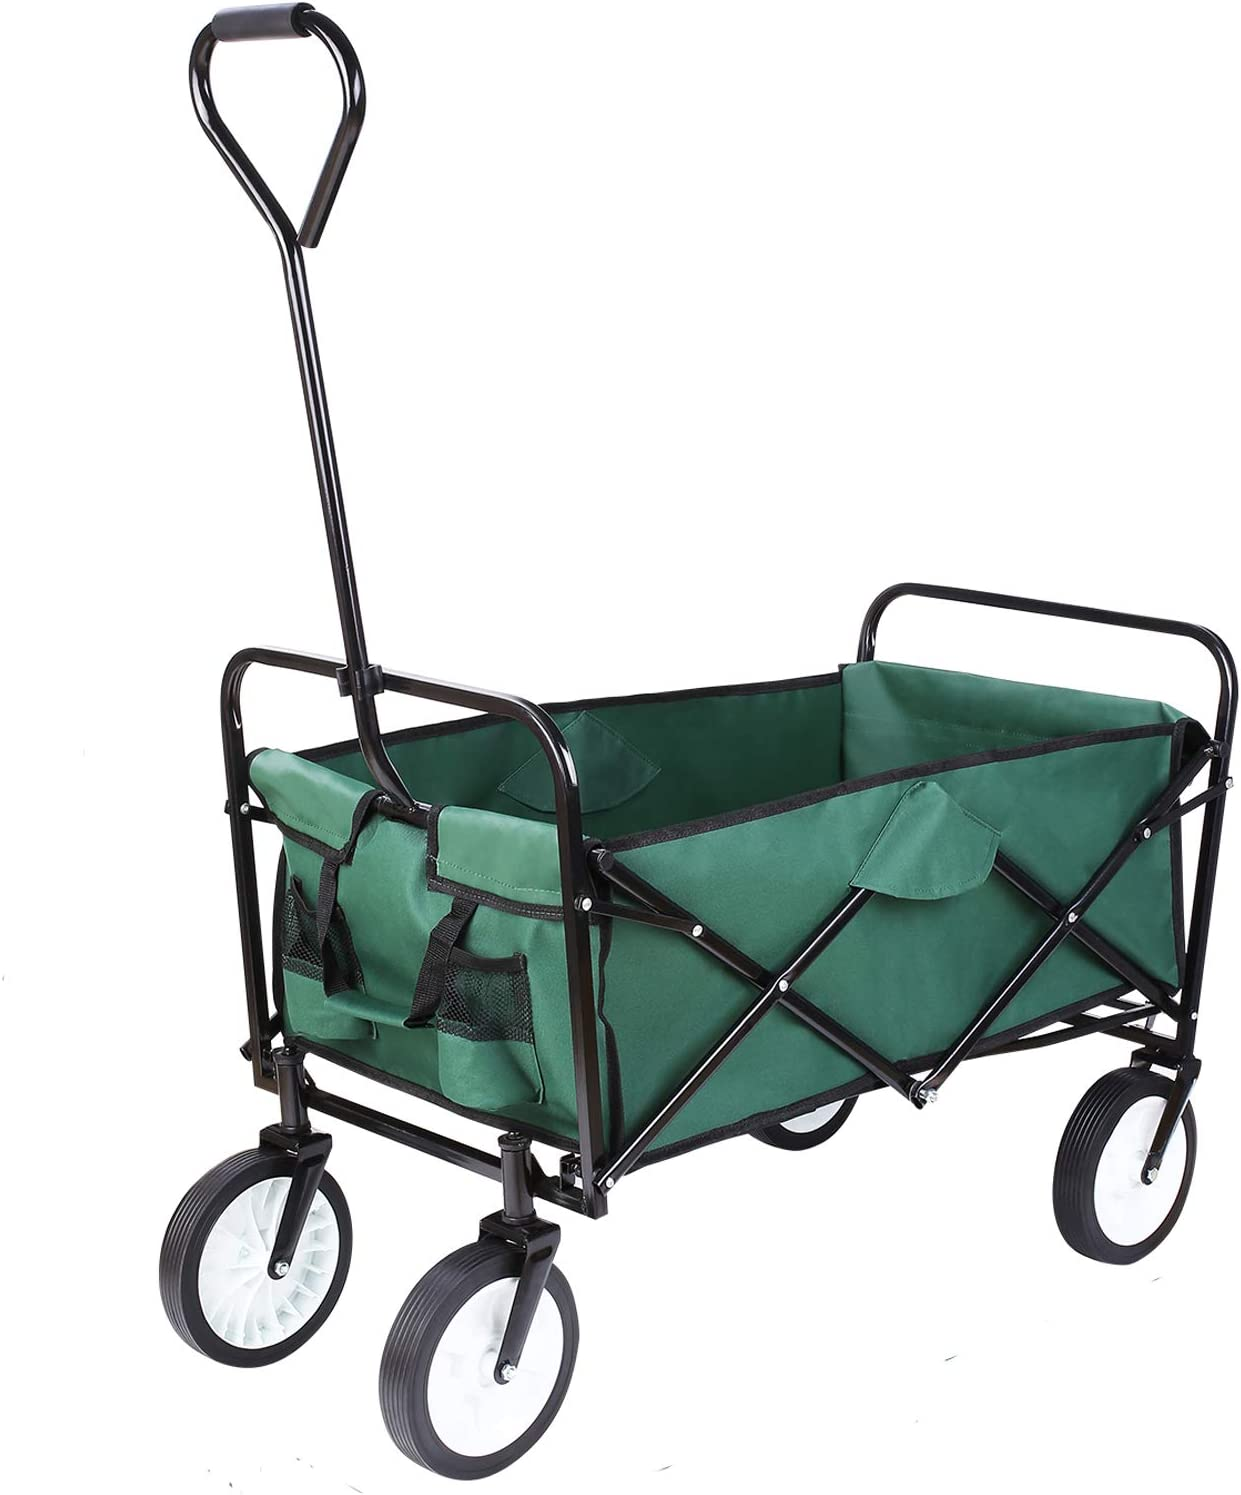 FIXKIT Collapsible Outdoor Utility Wagon, Folding Sturdy Garden Shopping Cart for Beach with All-Terrain Wheels, Dark Green